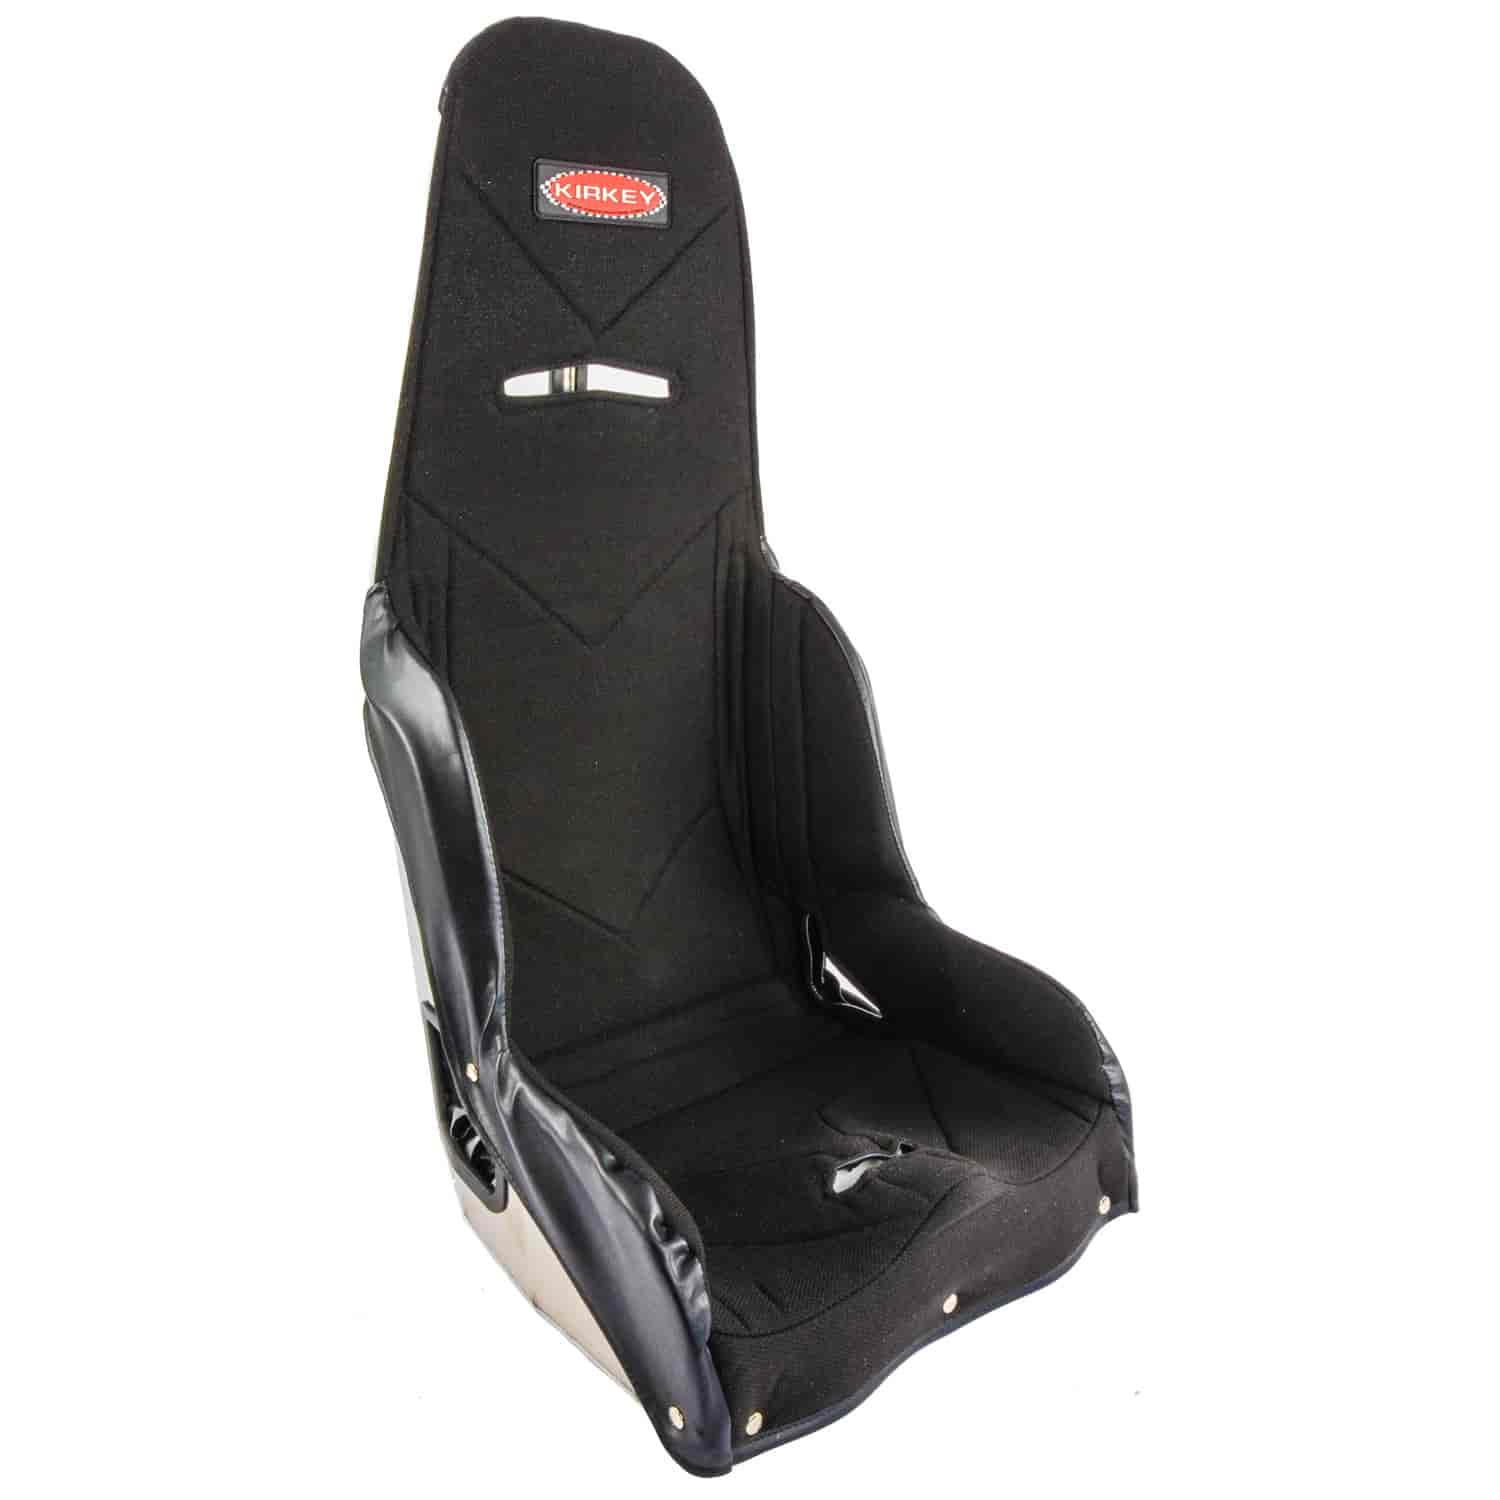 Kirkey 41911 - Kirkey Aluminum Pro Street Drag Racing Seats